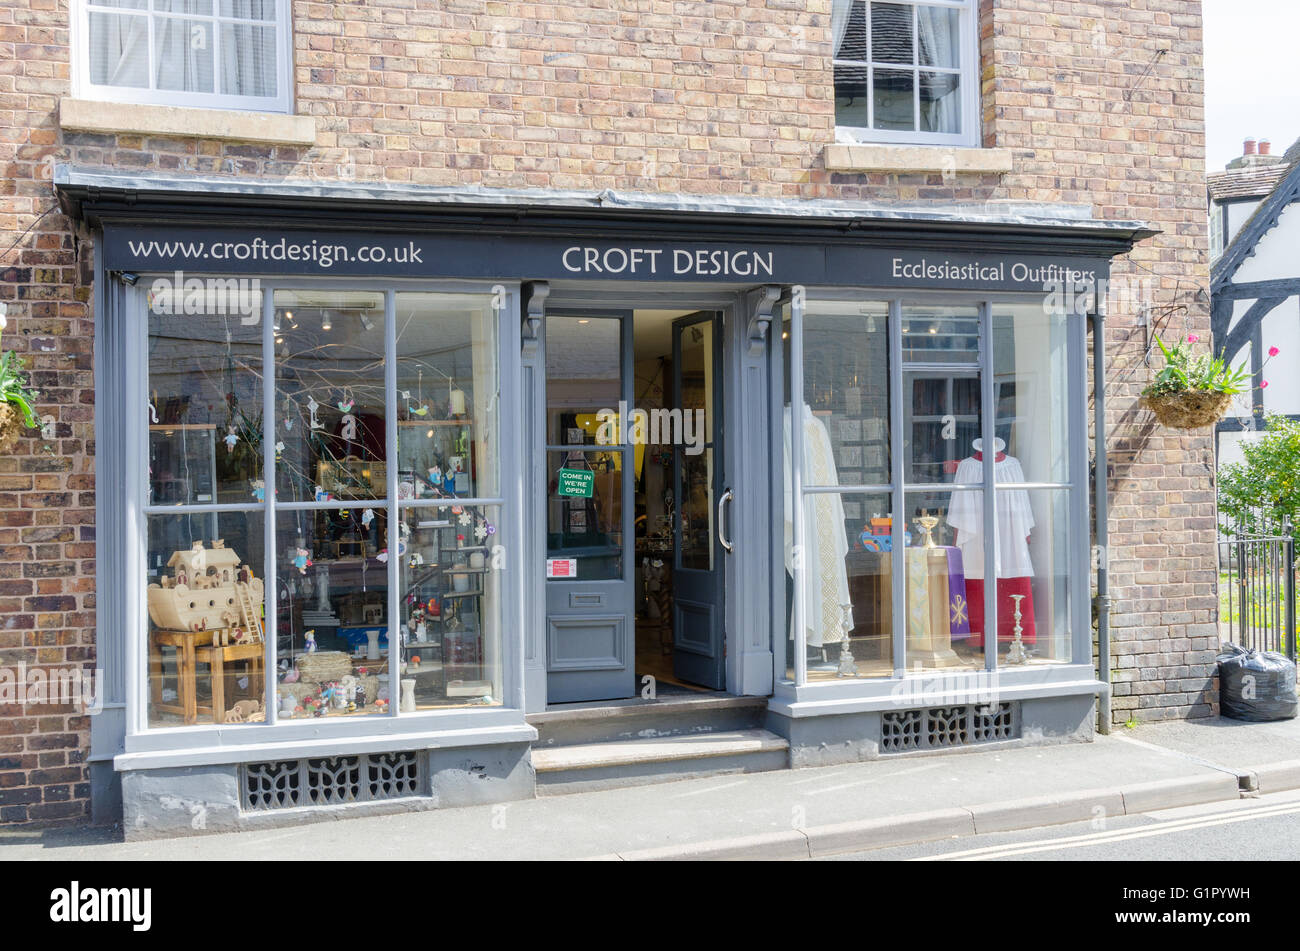 Croft Design Ecclesiastical Outfitters shop in Much wenlock, Shropshire - Stock Image